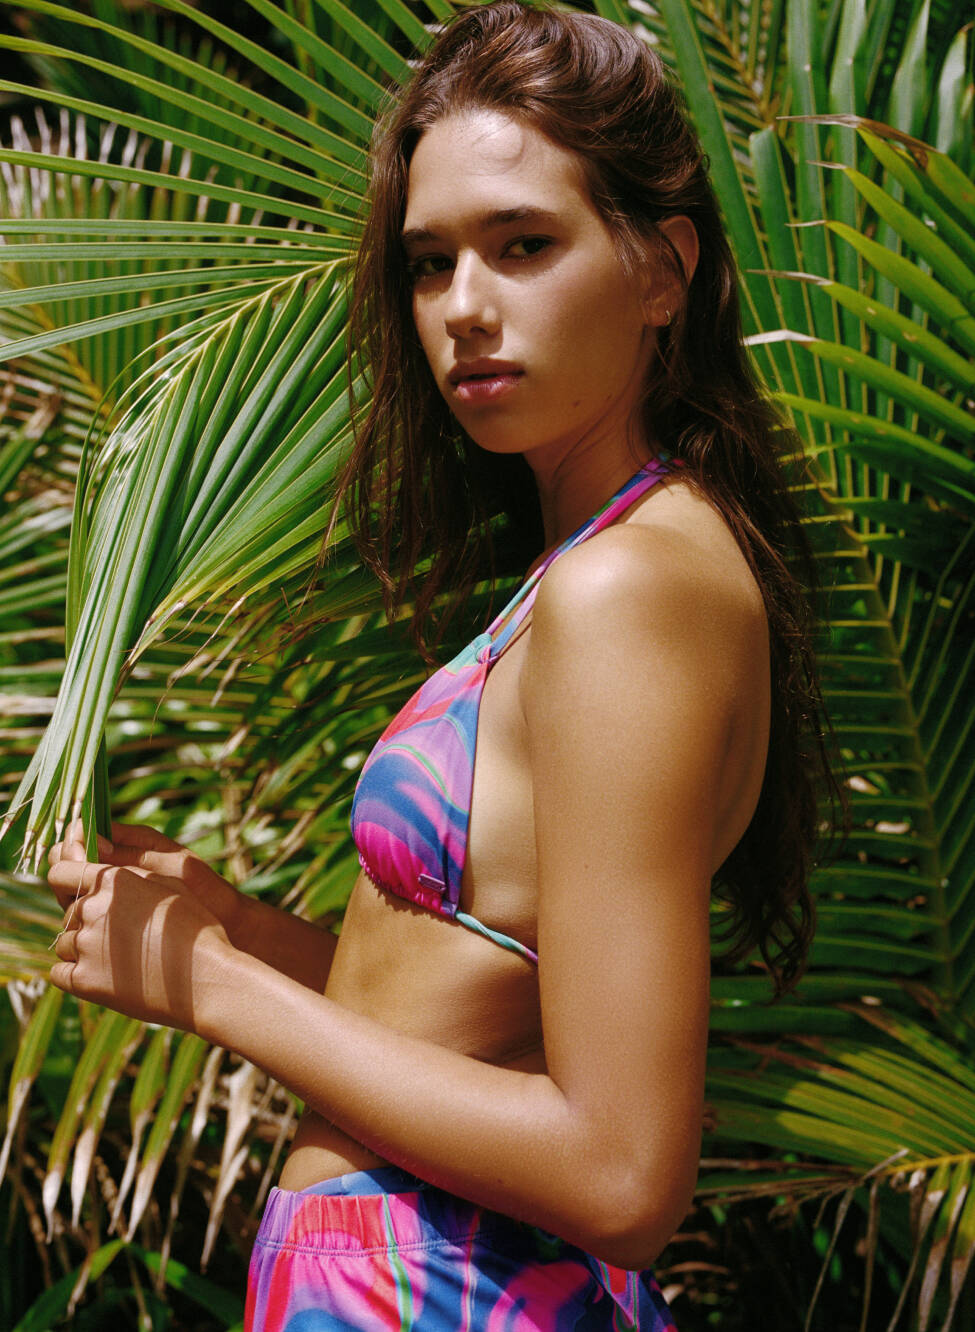 f0c44f8b6f PULL&BEAR Hungary | Trends for Spring Summer 2019